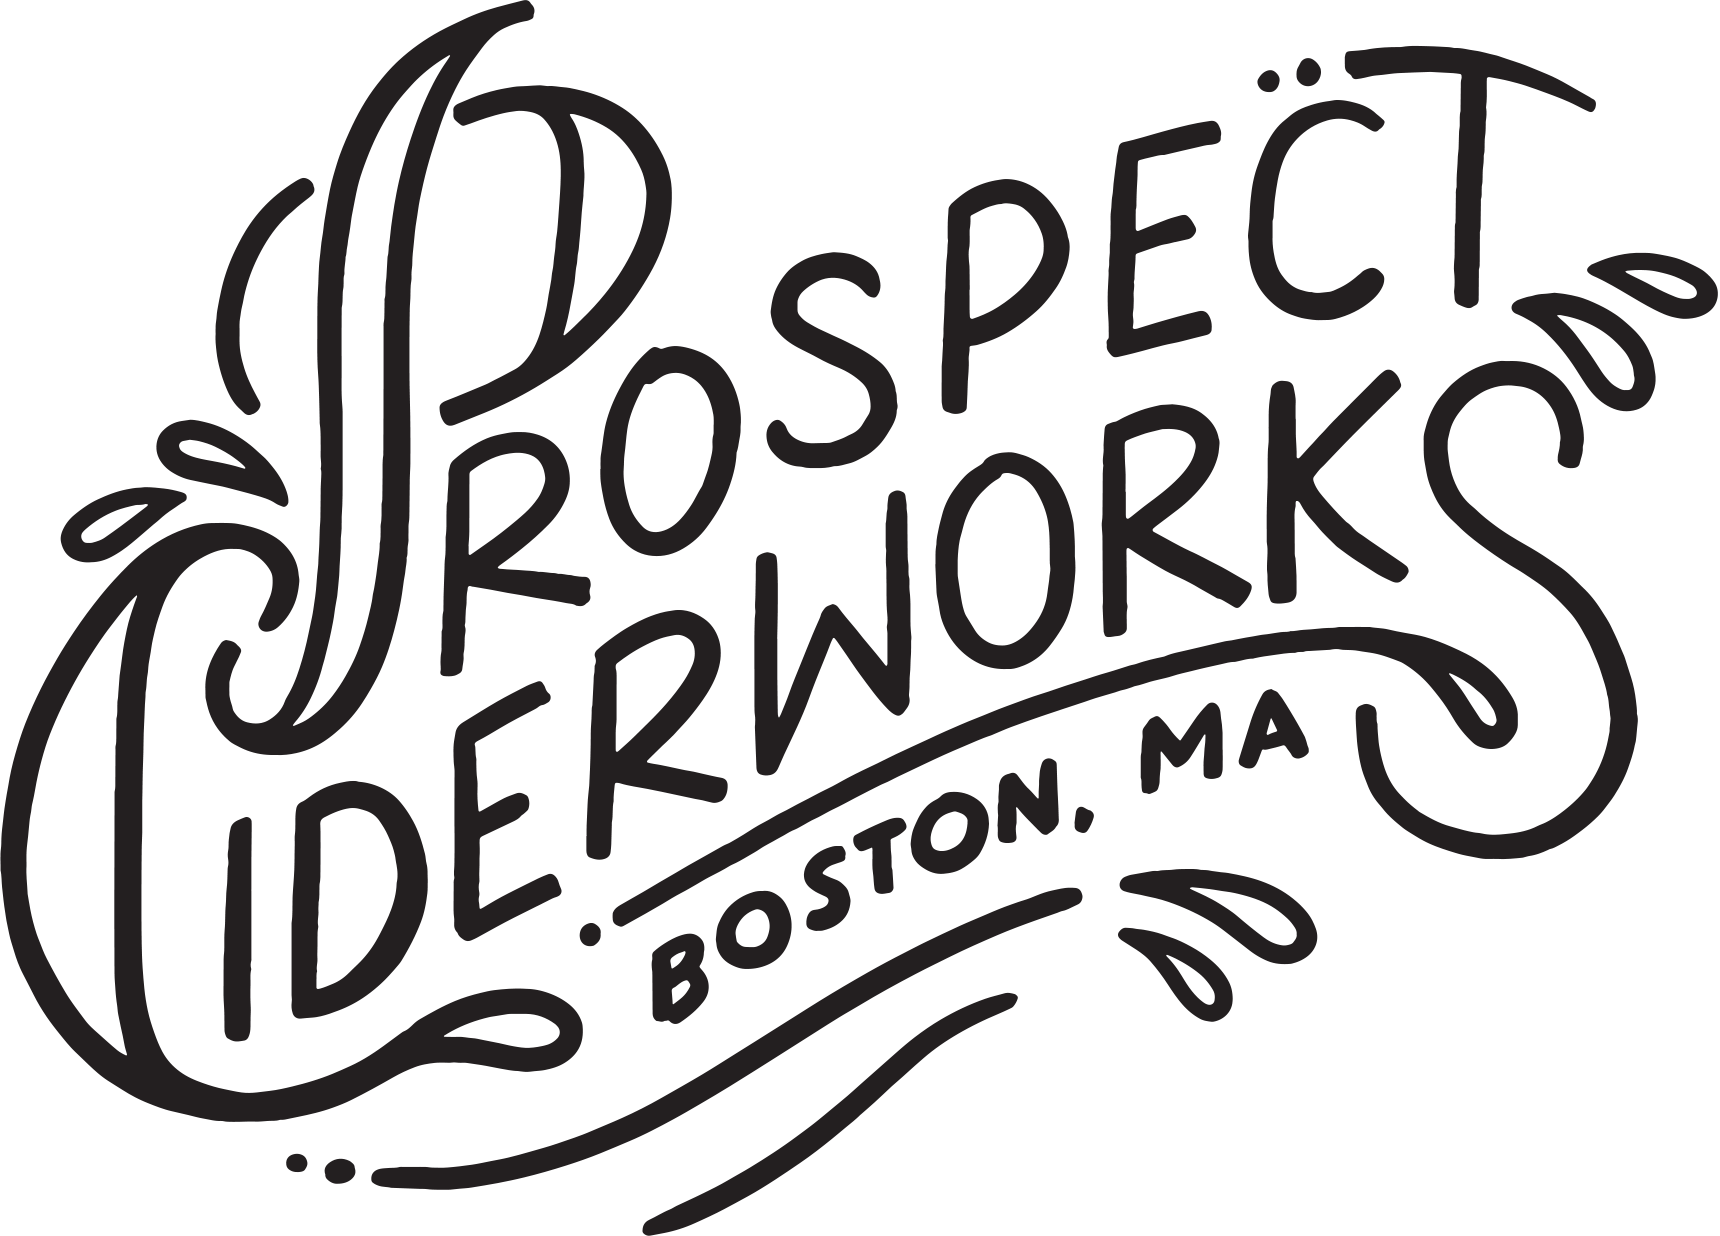 Image result for Prospect Ciderworks